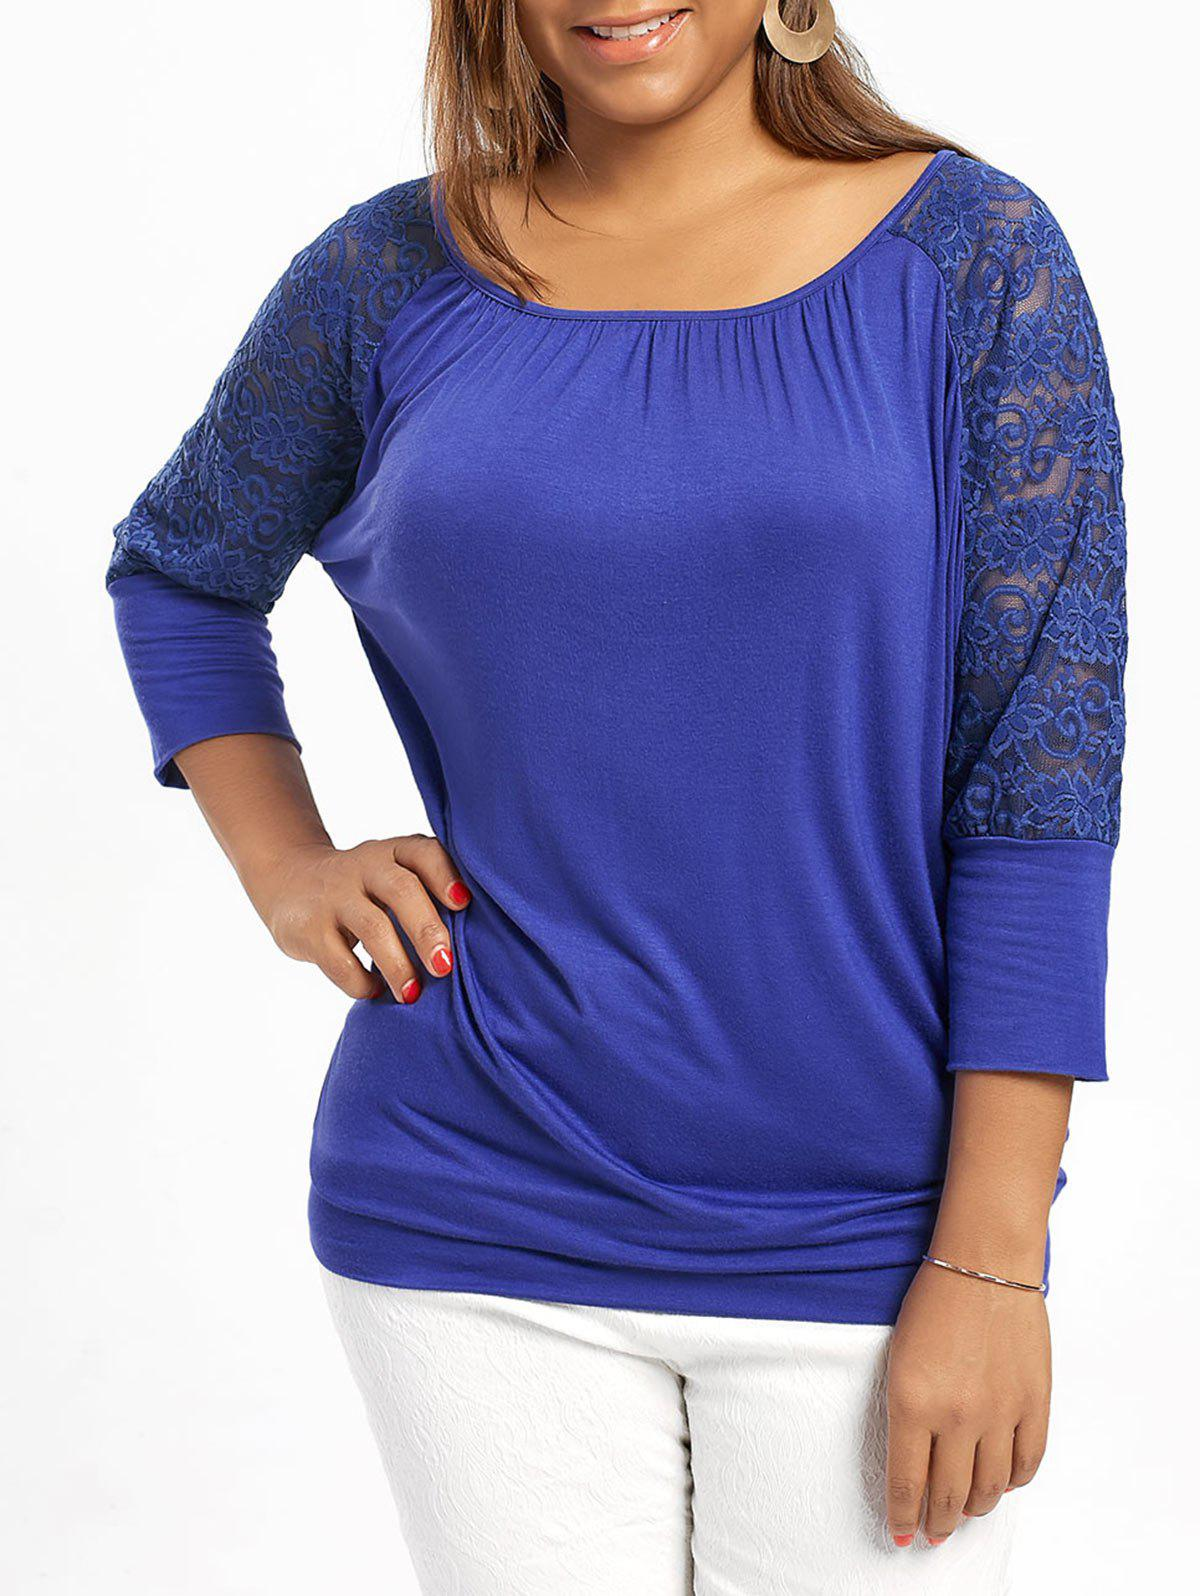 Plus Size Raglan Sleeve Lace Trim TopWOMEN<br><br>Size: 2XL; Color: BLUE; Material: Rayon,Spandex; Shirt Length: Long; Sleeve Length: Three Quarter; Collar: Scoop Neck; Style: Casual; Season: Summer; Embellishment: Lace; Pattern Type: Floral; Weight: 0.2800kg; Package Contents: 1 x Top;